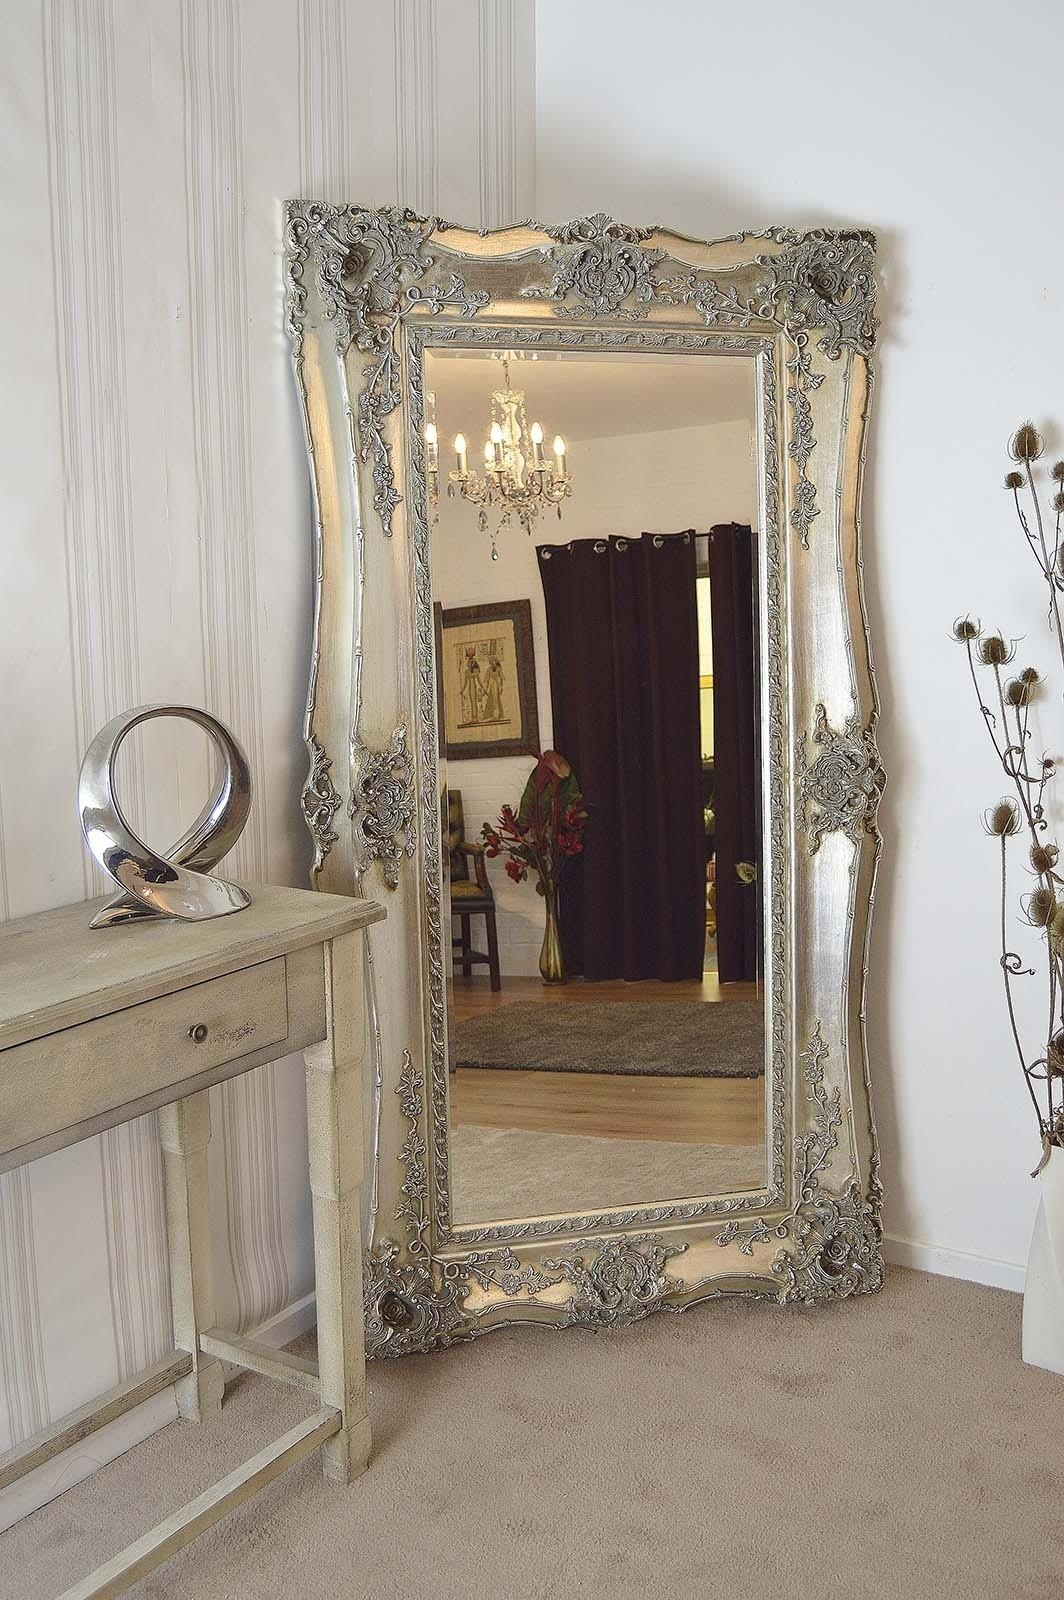 Large Antique Wall Mirror Ornate Frame Antique Ornate Wall Mirrors Regarding Vintage Large Mirrors (View 5 of 20)